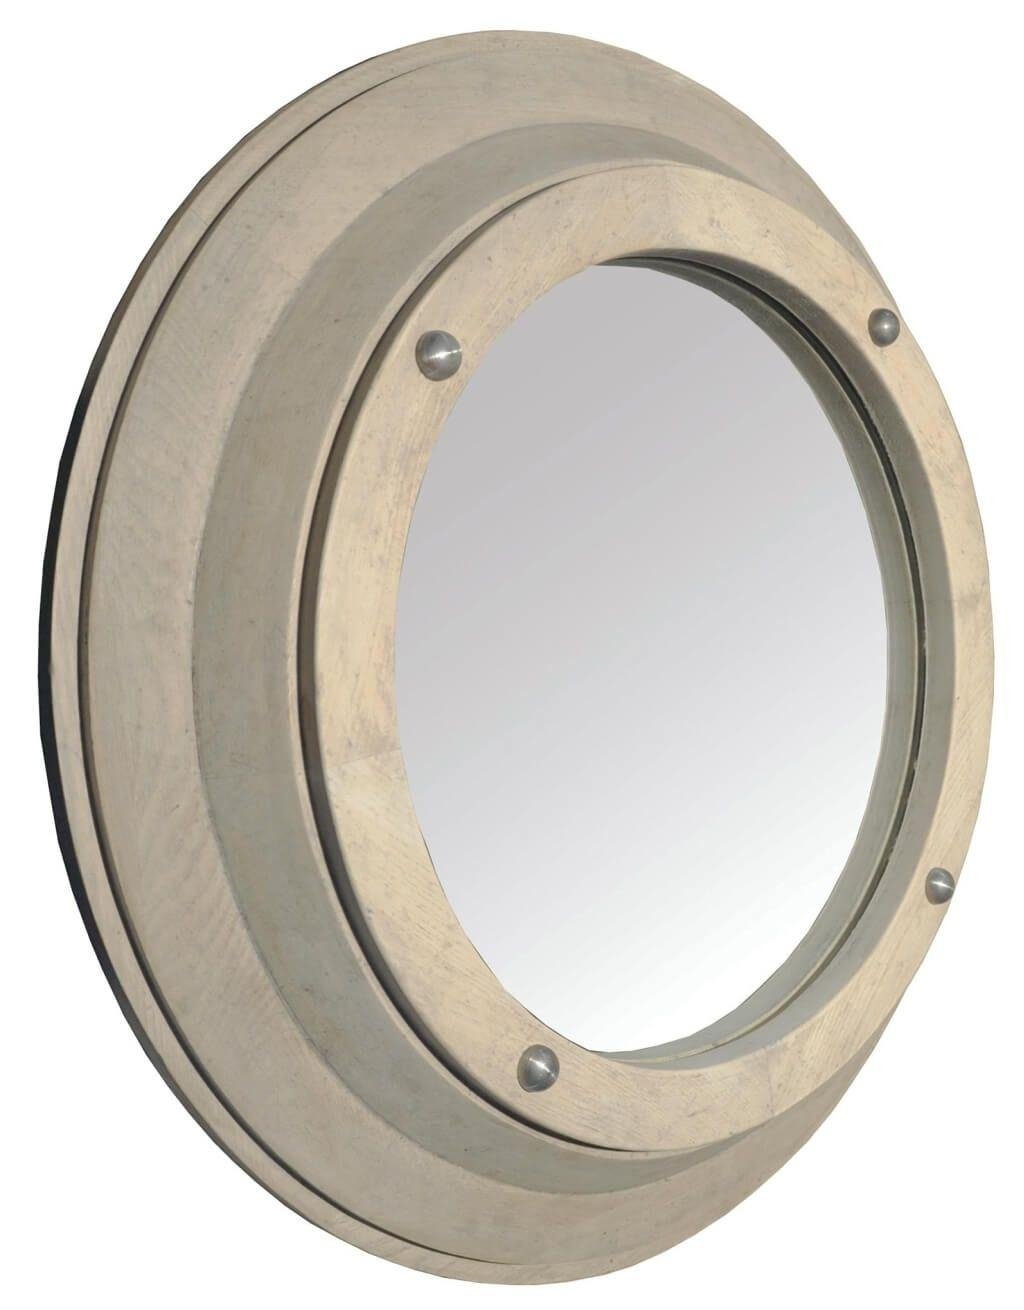 Home Decoration: Best Rustic Porthole Mirror – Decorative Porthole Intended For Porthole Mirrors For Sale (View 20 of 20)